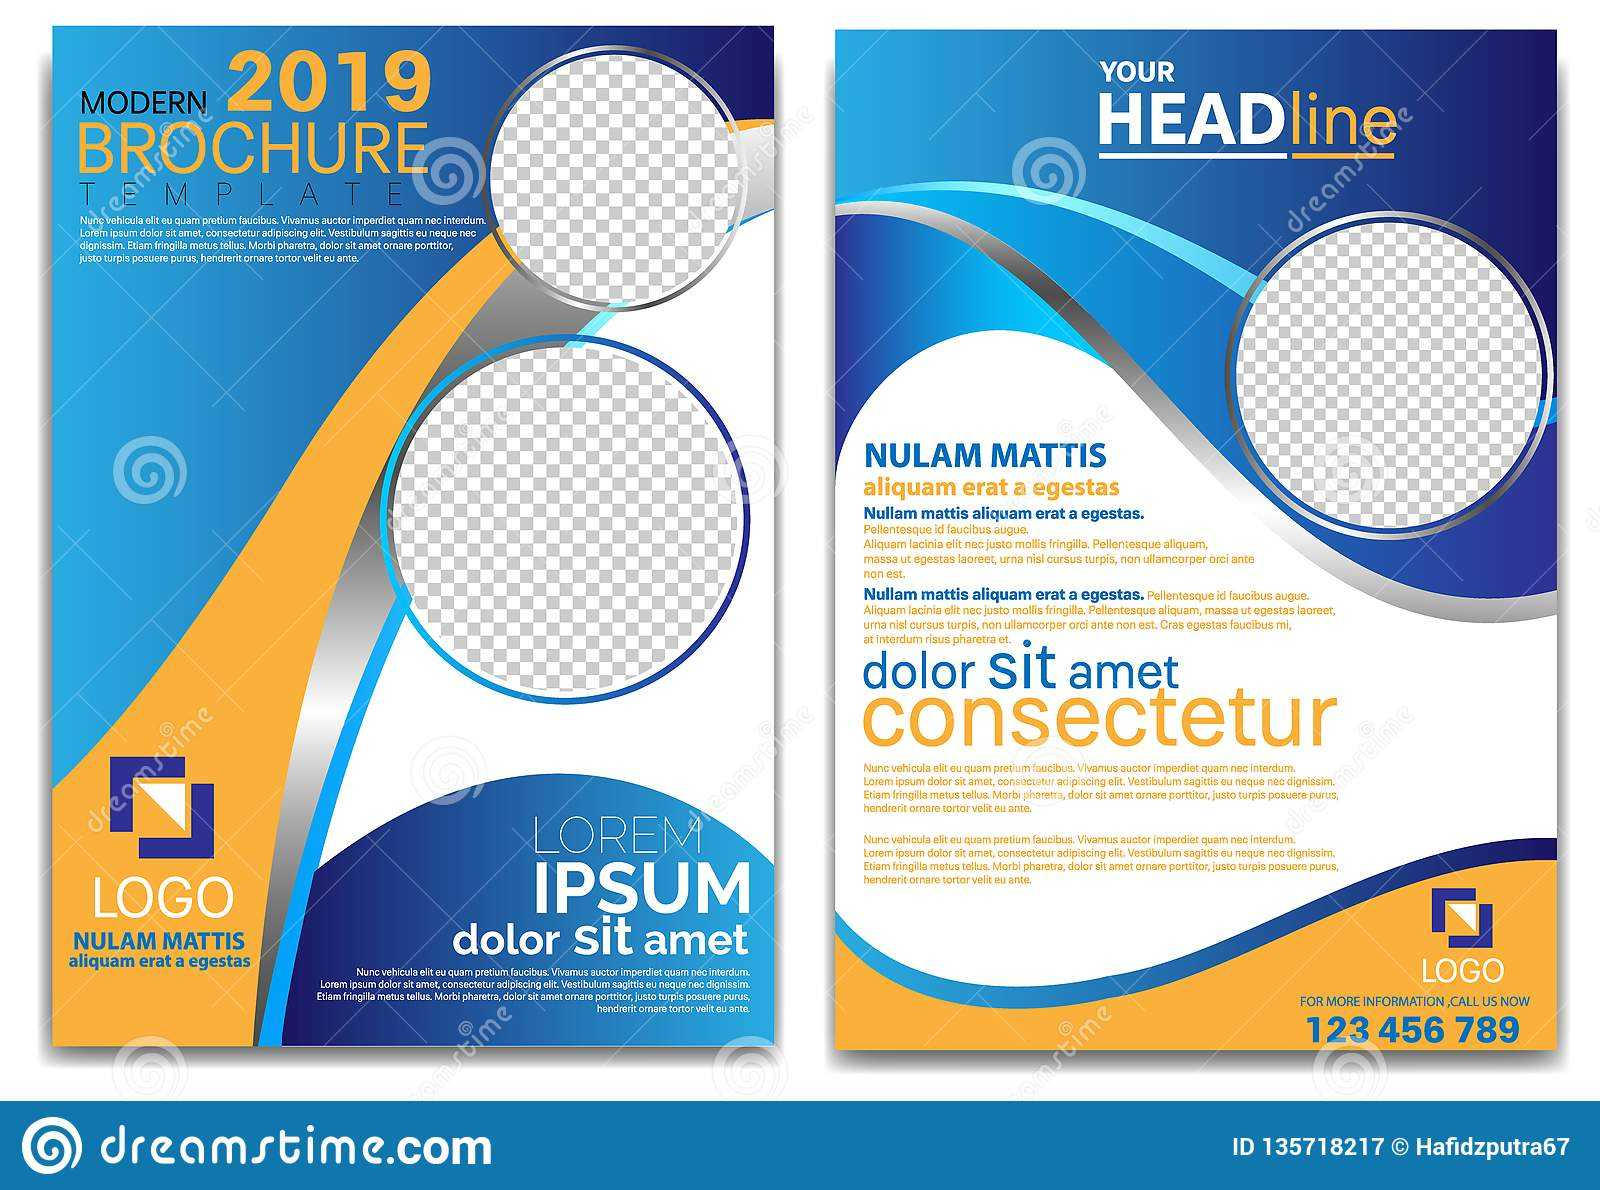 Modern Brochure Template 2019 And Professional Brochure Intended For Professional Brochure Design Templates